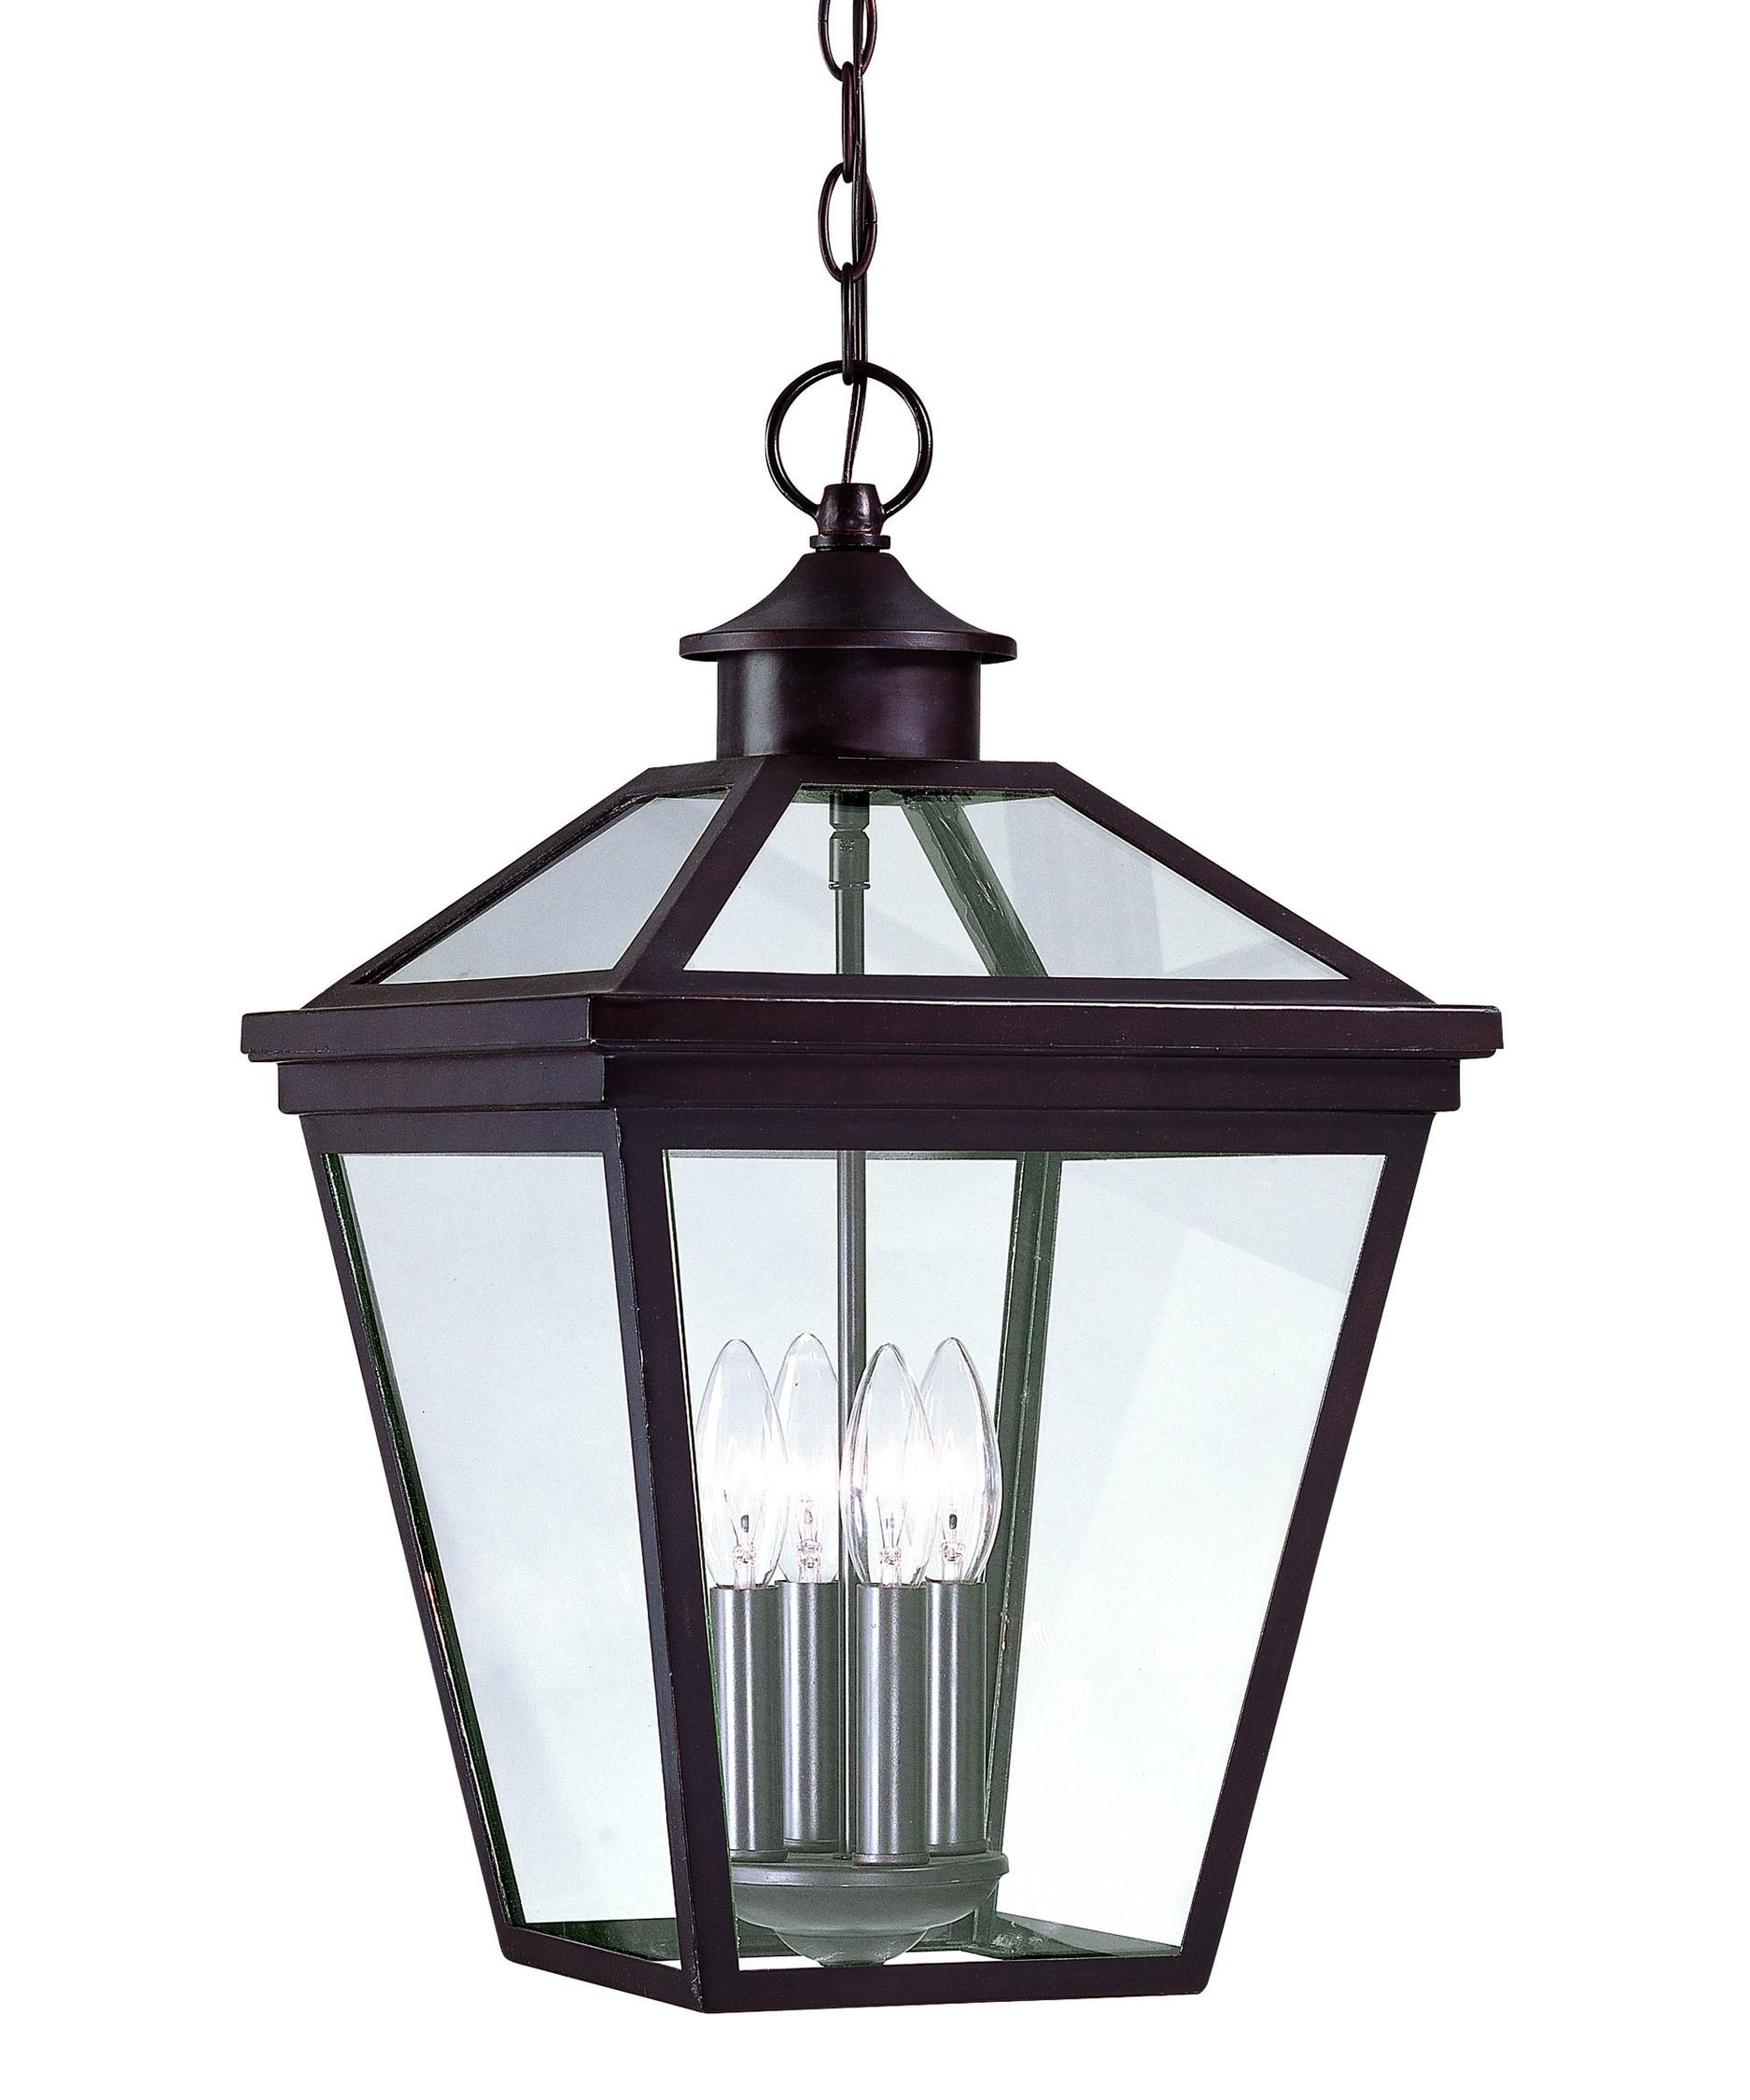 Furniture : Savoy House Ellijay Inch Wide Light Outdoor Hanging Throughout Outdoor Hanging Lights From Australia (View 9 of 15)